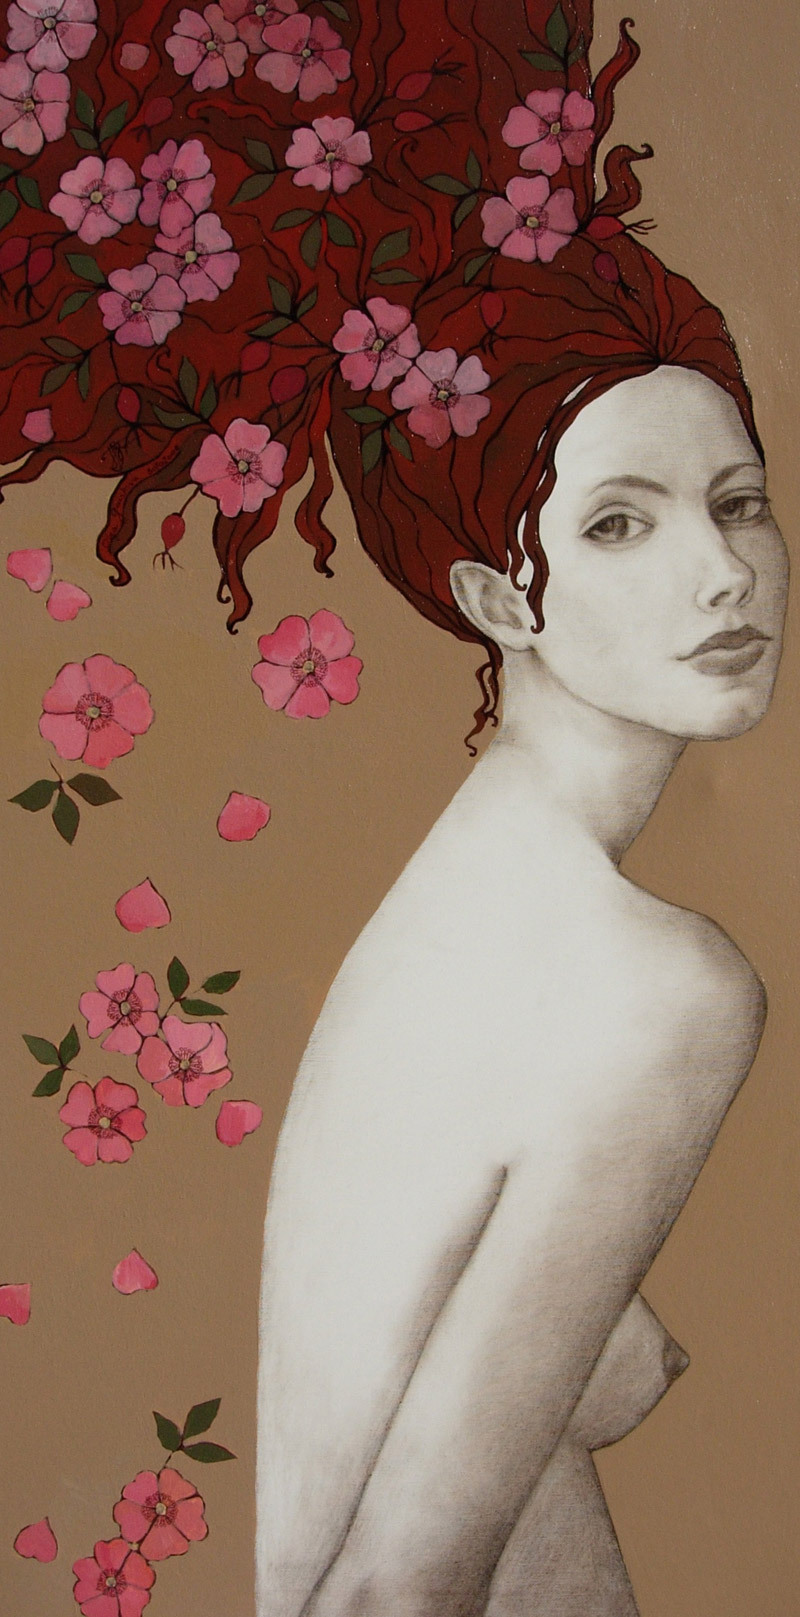 MON JARDIN50x100 cmacrylic on canvas, sepia pencil, acrylic pen2006sold